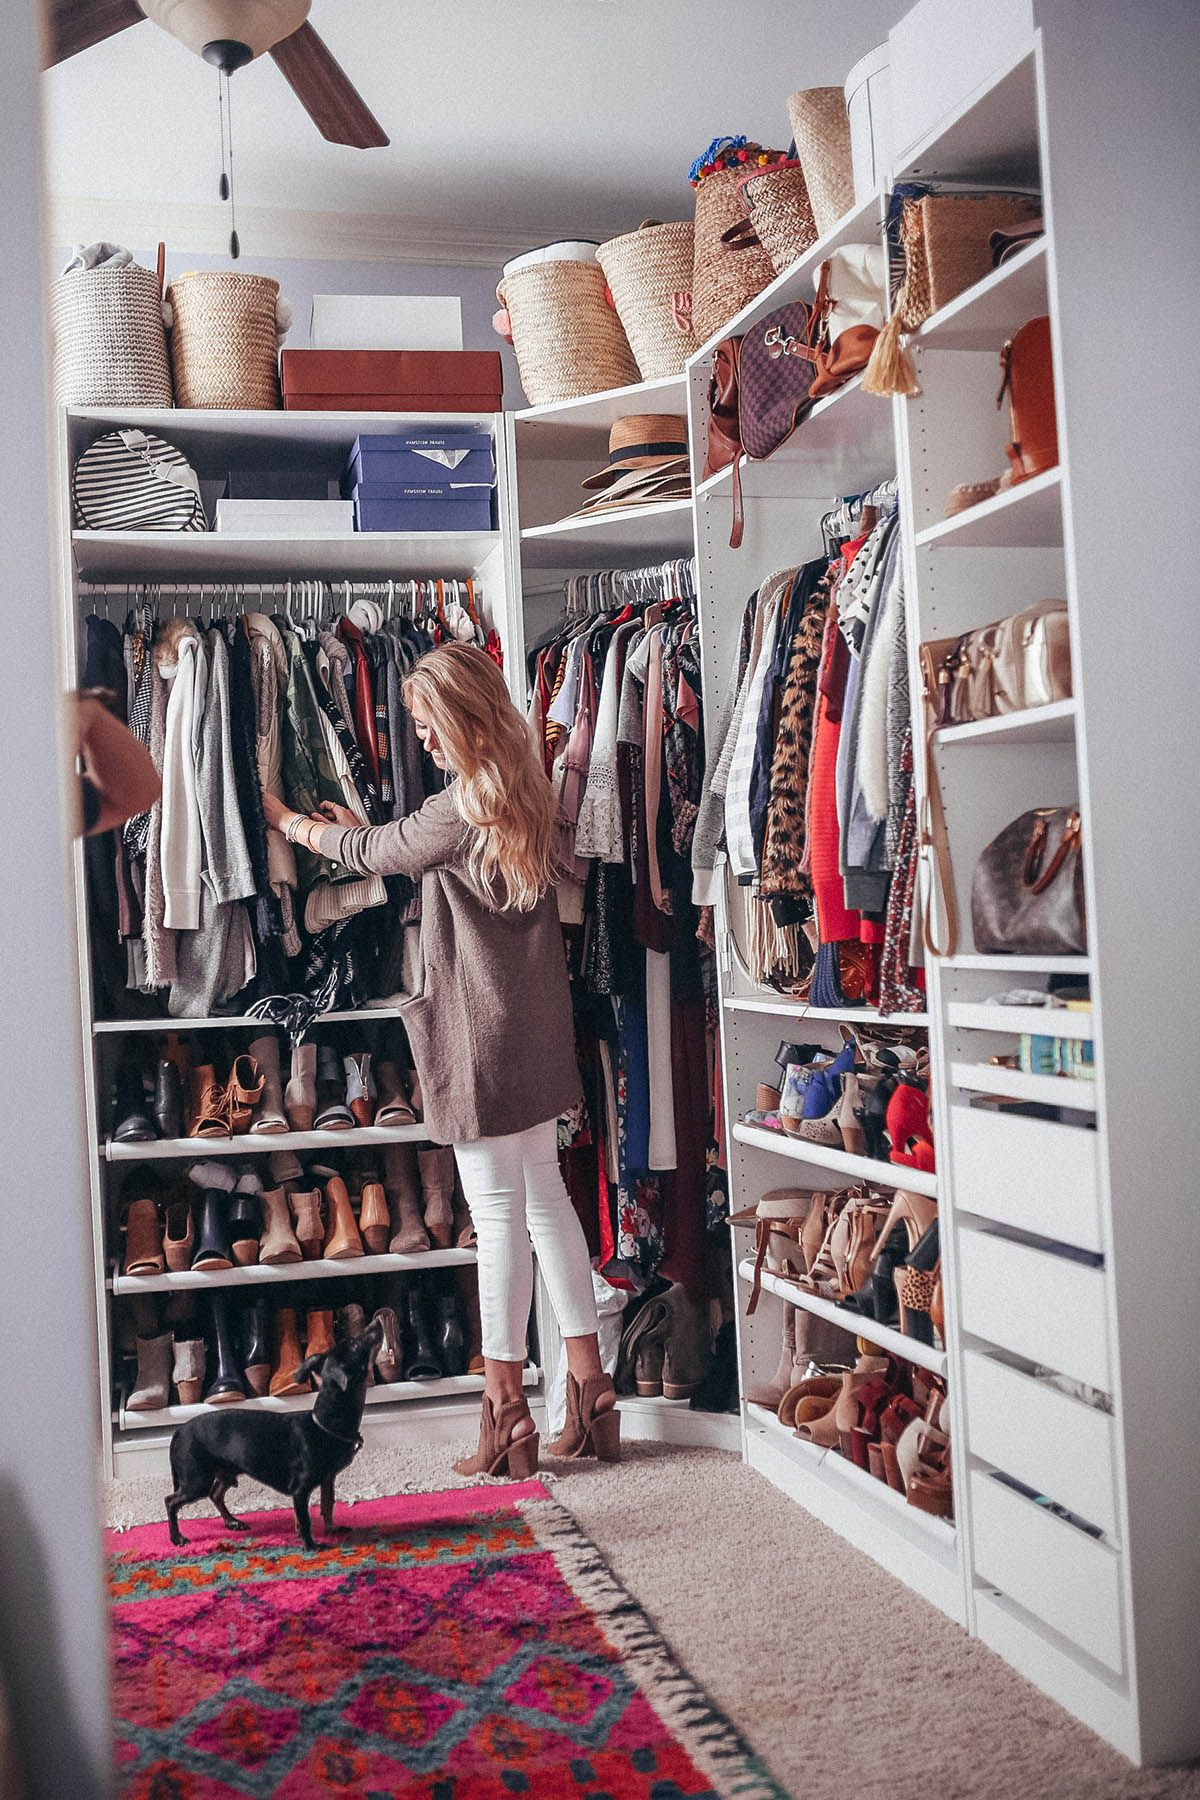 How To Clean Out Your Closet Closet Organization Tips Master Bedroom Closets Organization Bedroom Organization Closet Closet Bedroom